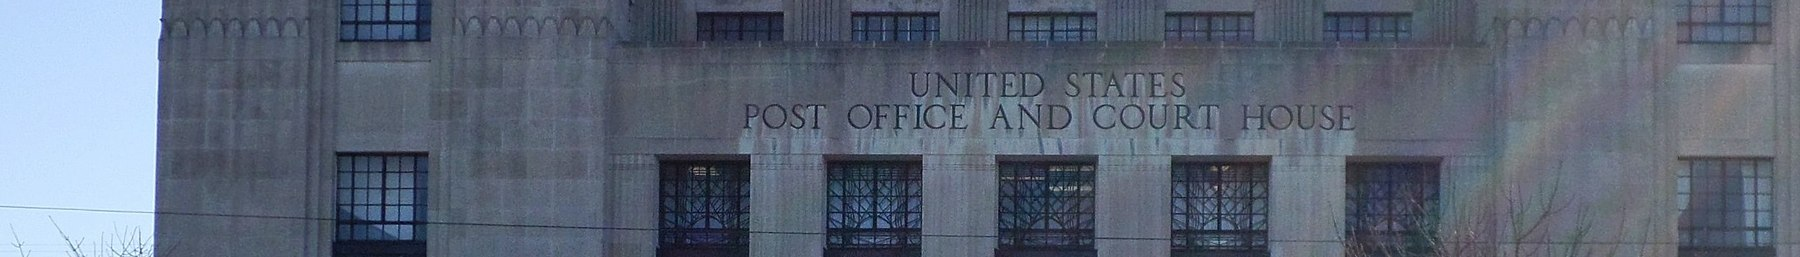 U.S. Post Office and Courthouse, Ada Oklahoma 2 (cropped).jpg